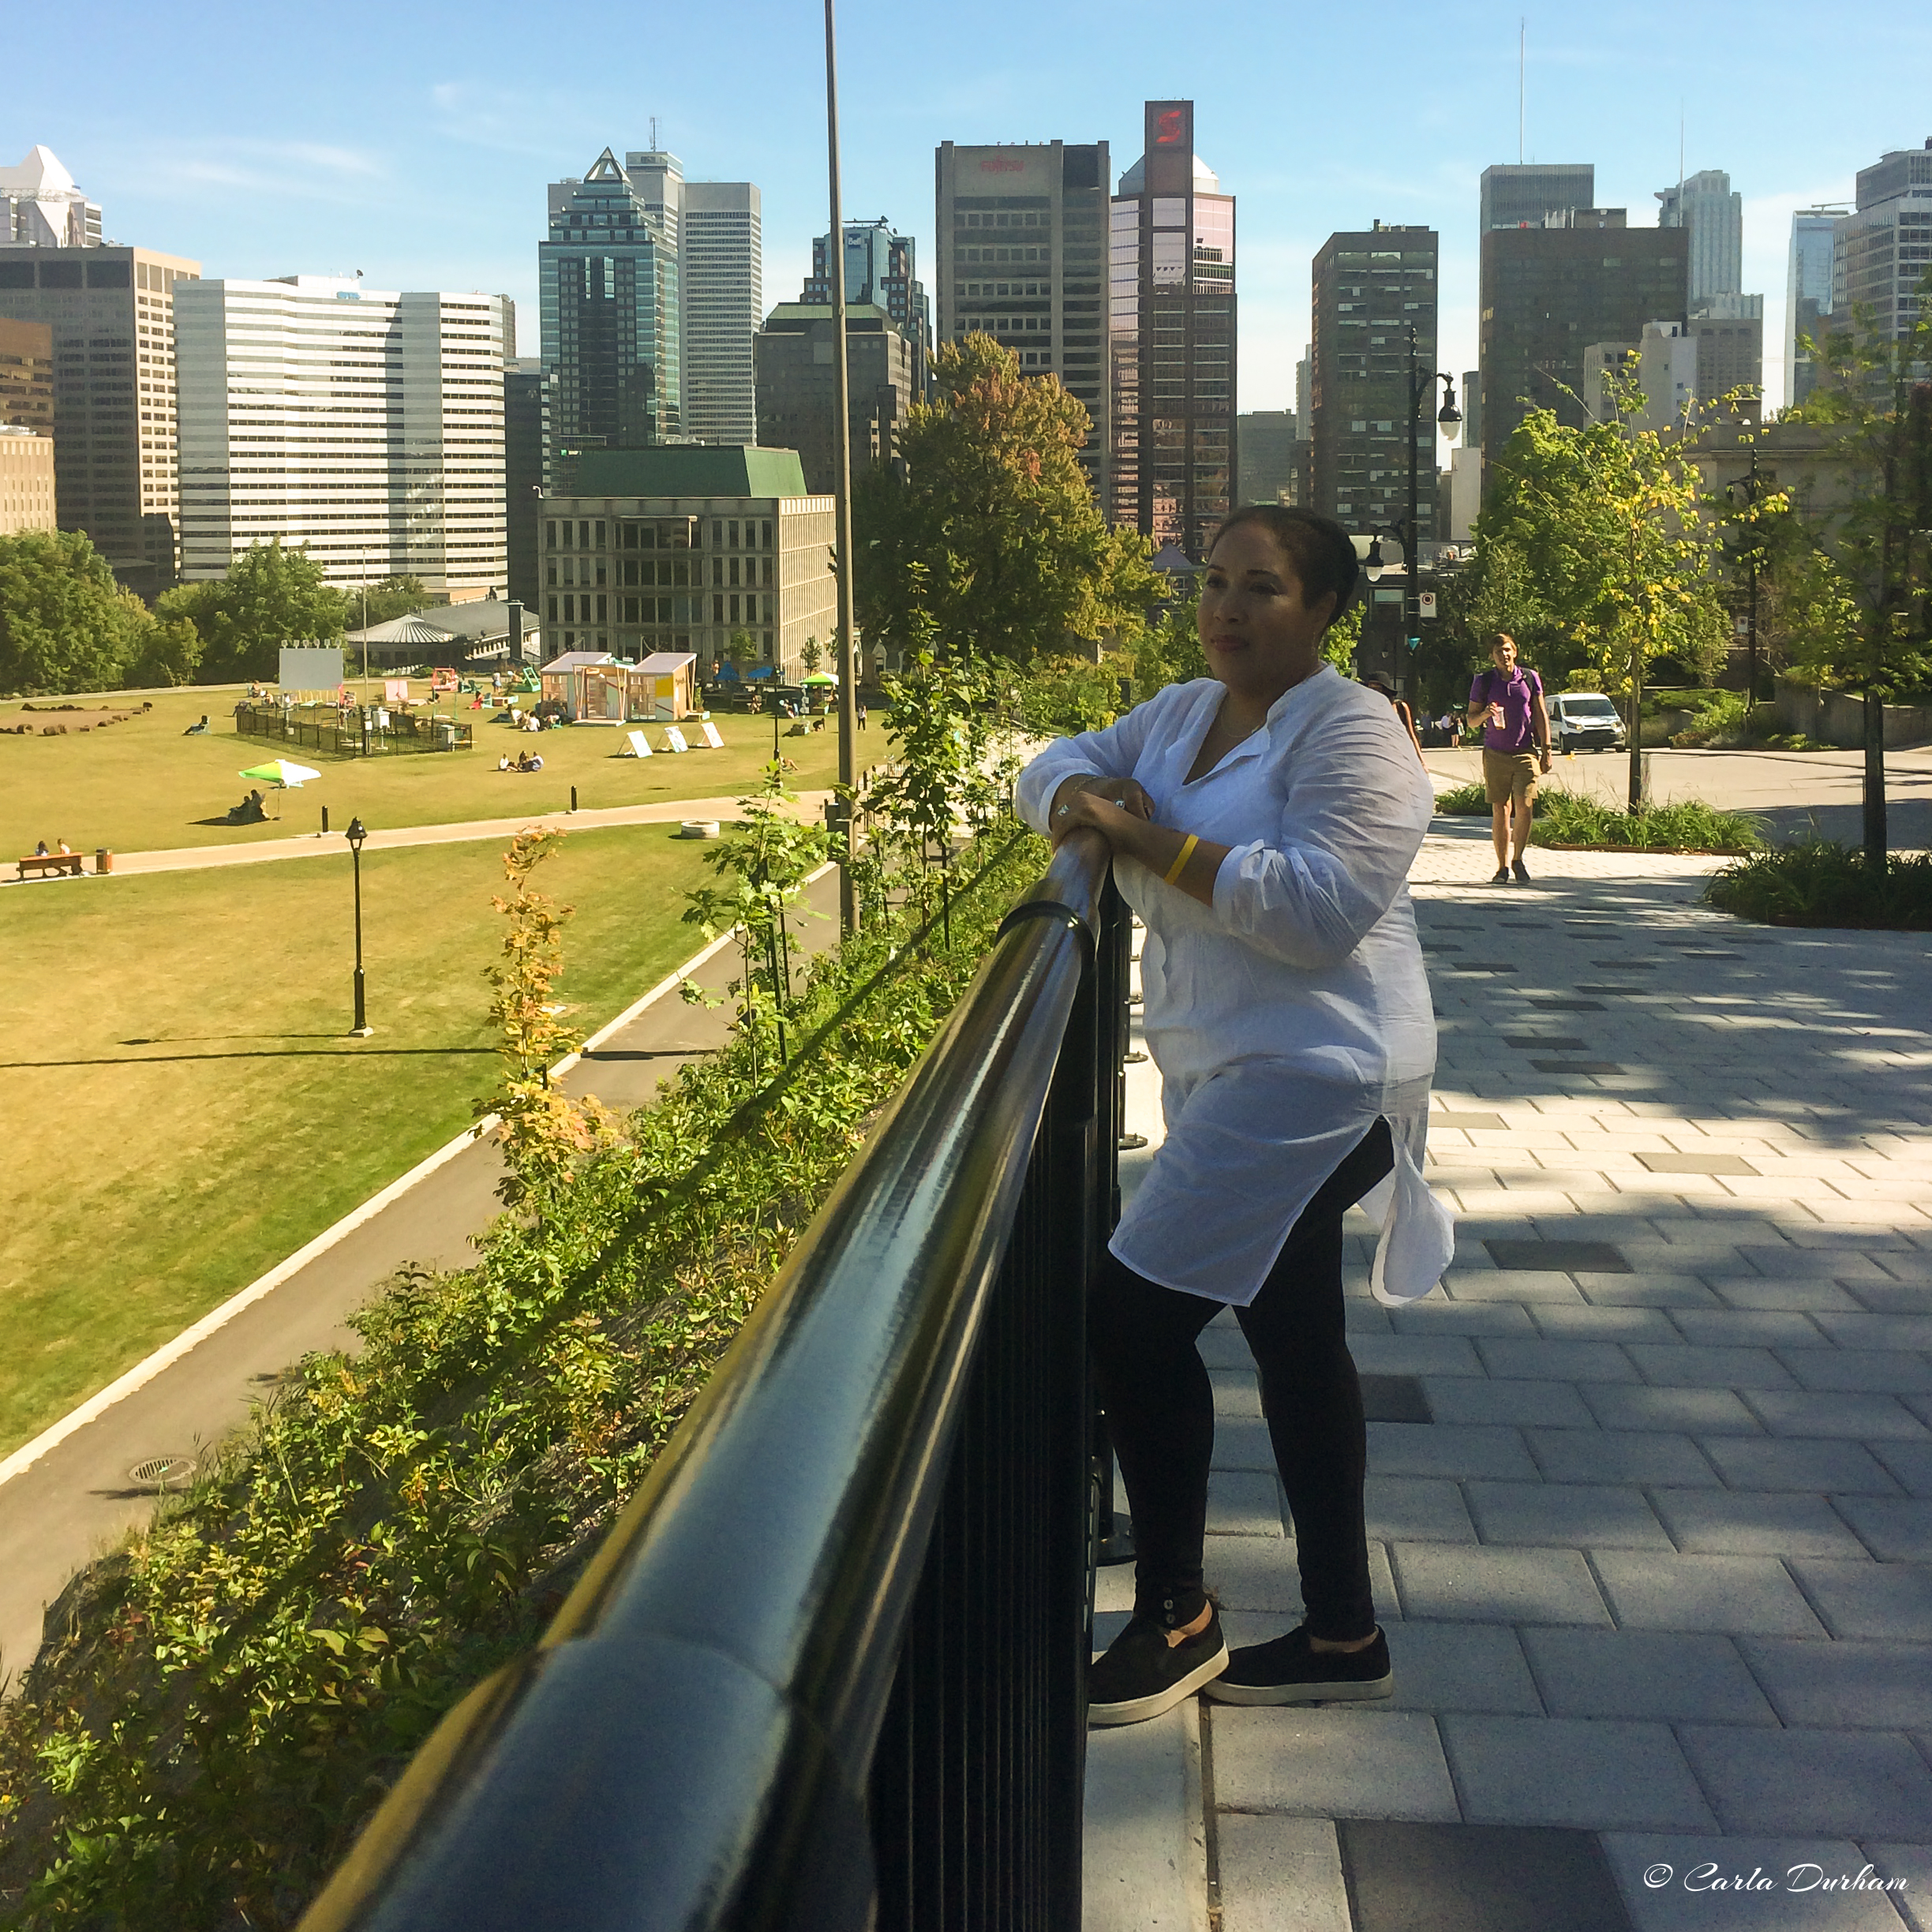 Carla Durham in Montreal, Canada with the skyline in the background